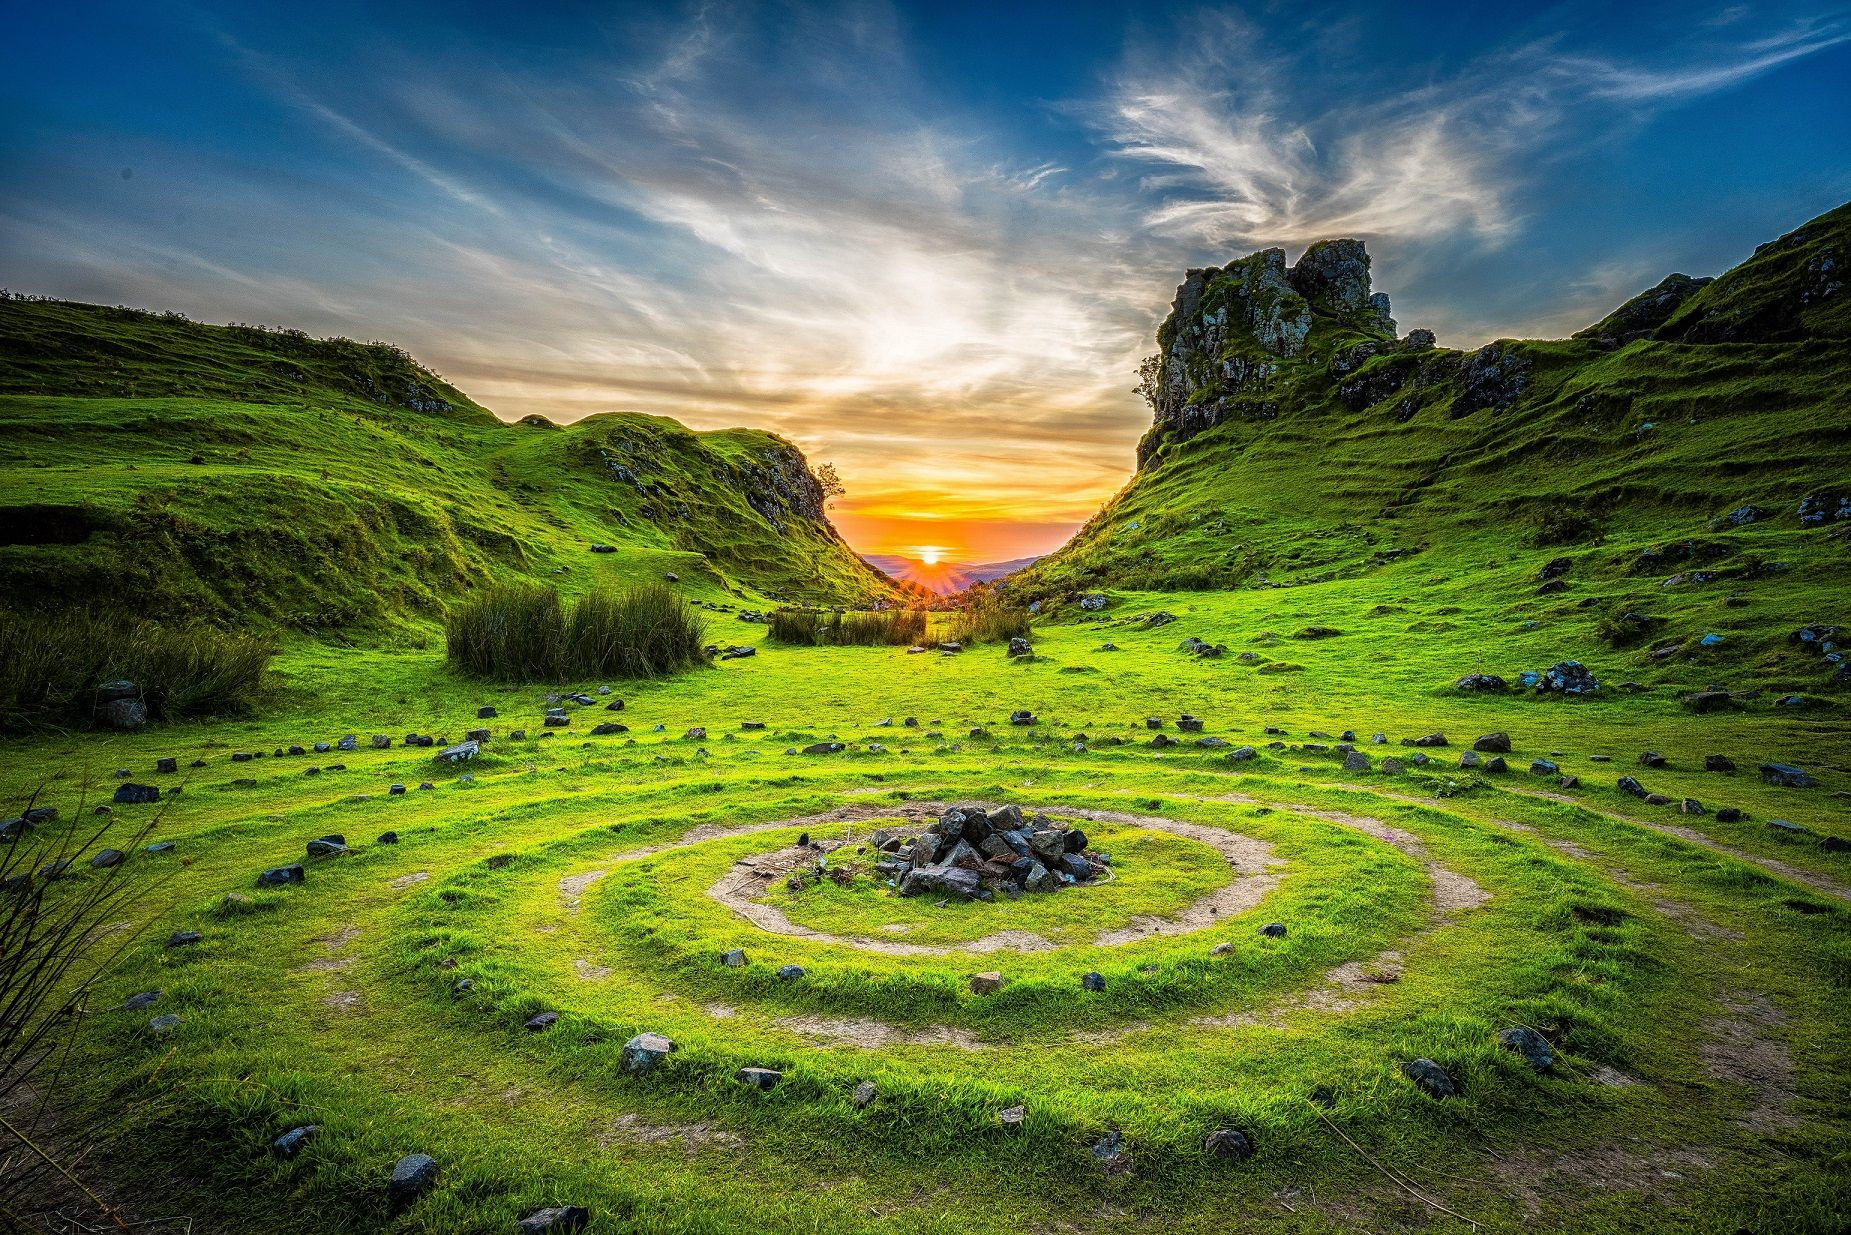 Mentoring program for new doulas labyrinth